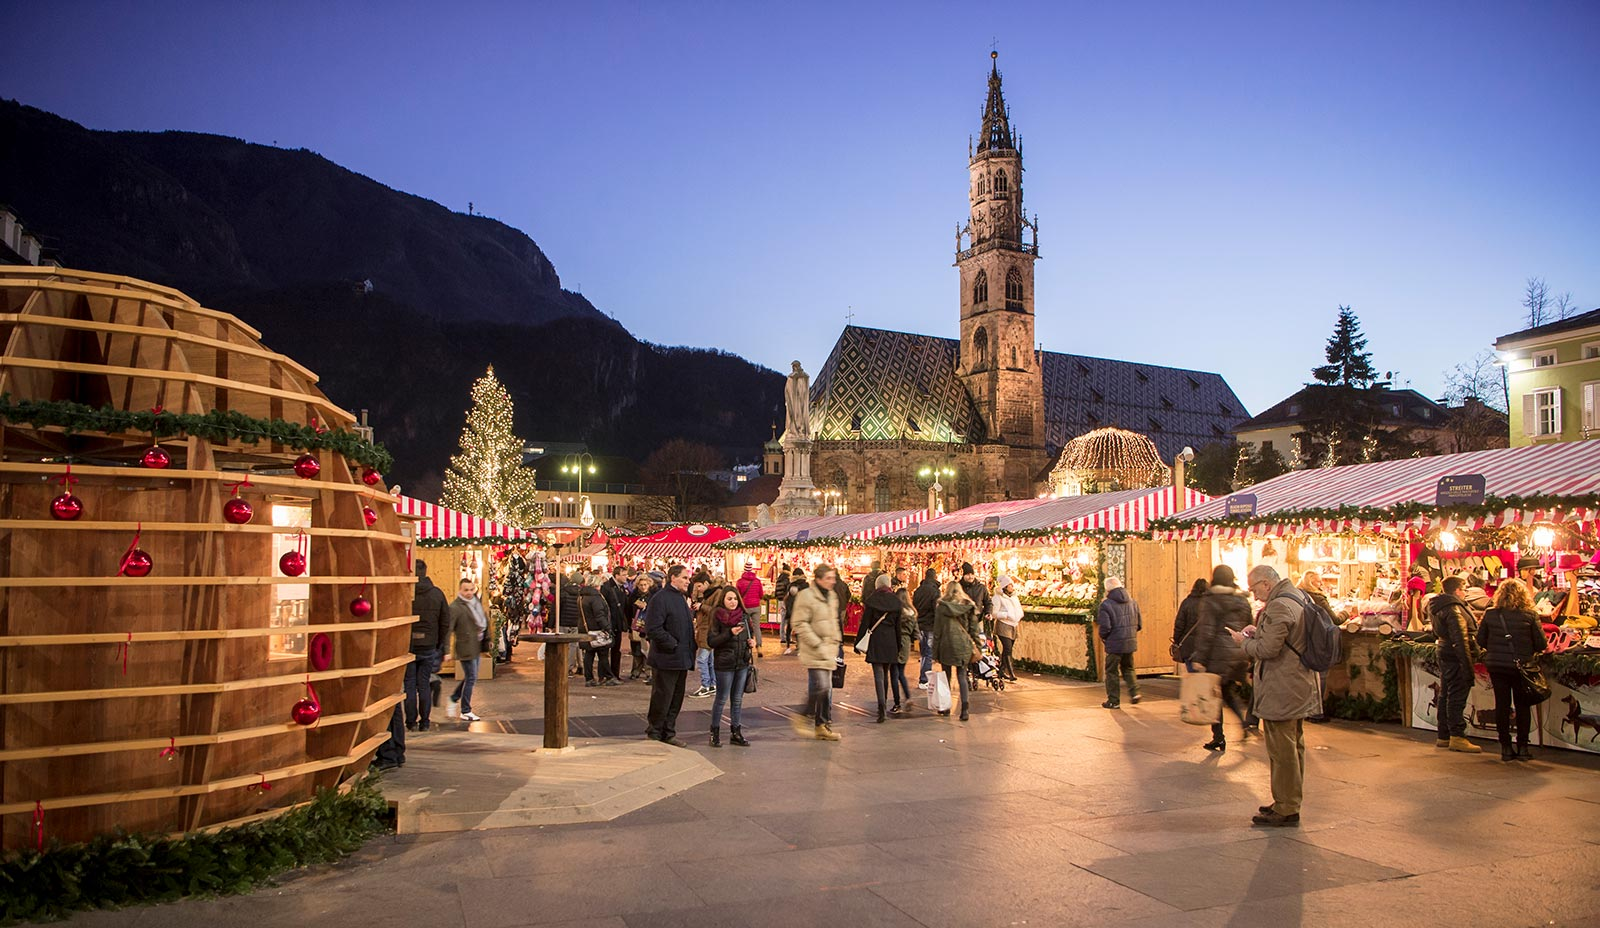 Piazza Walther decorated during the Christmas markets